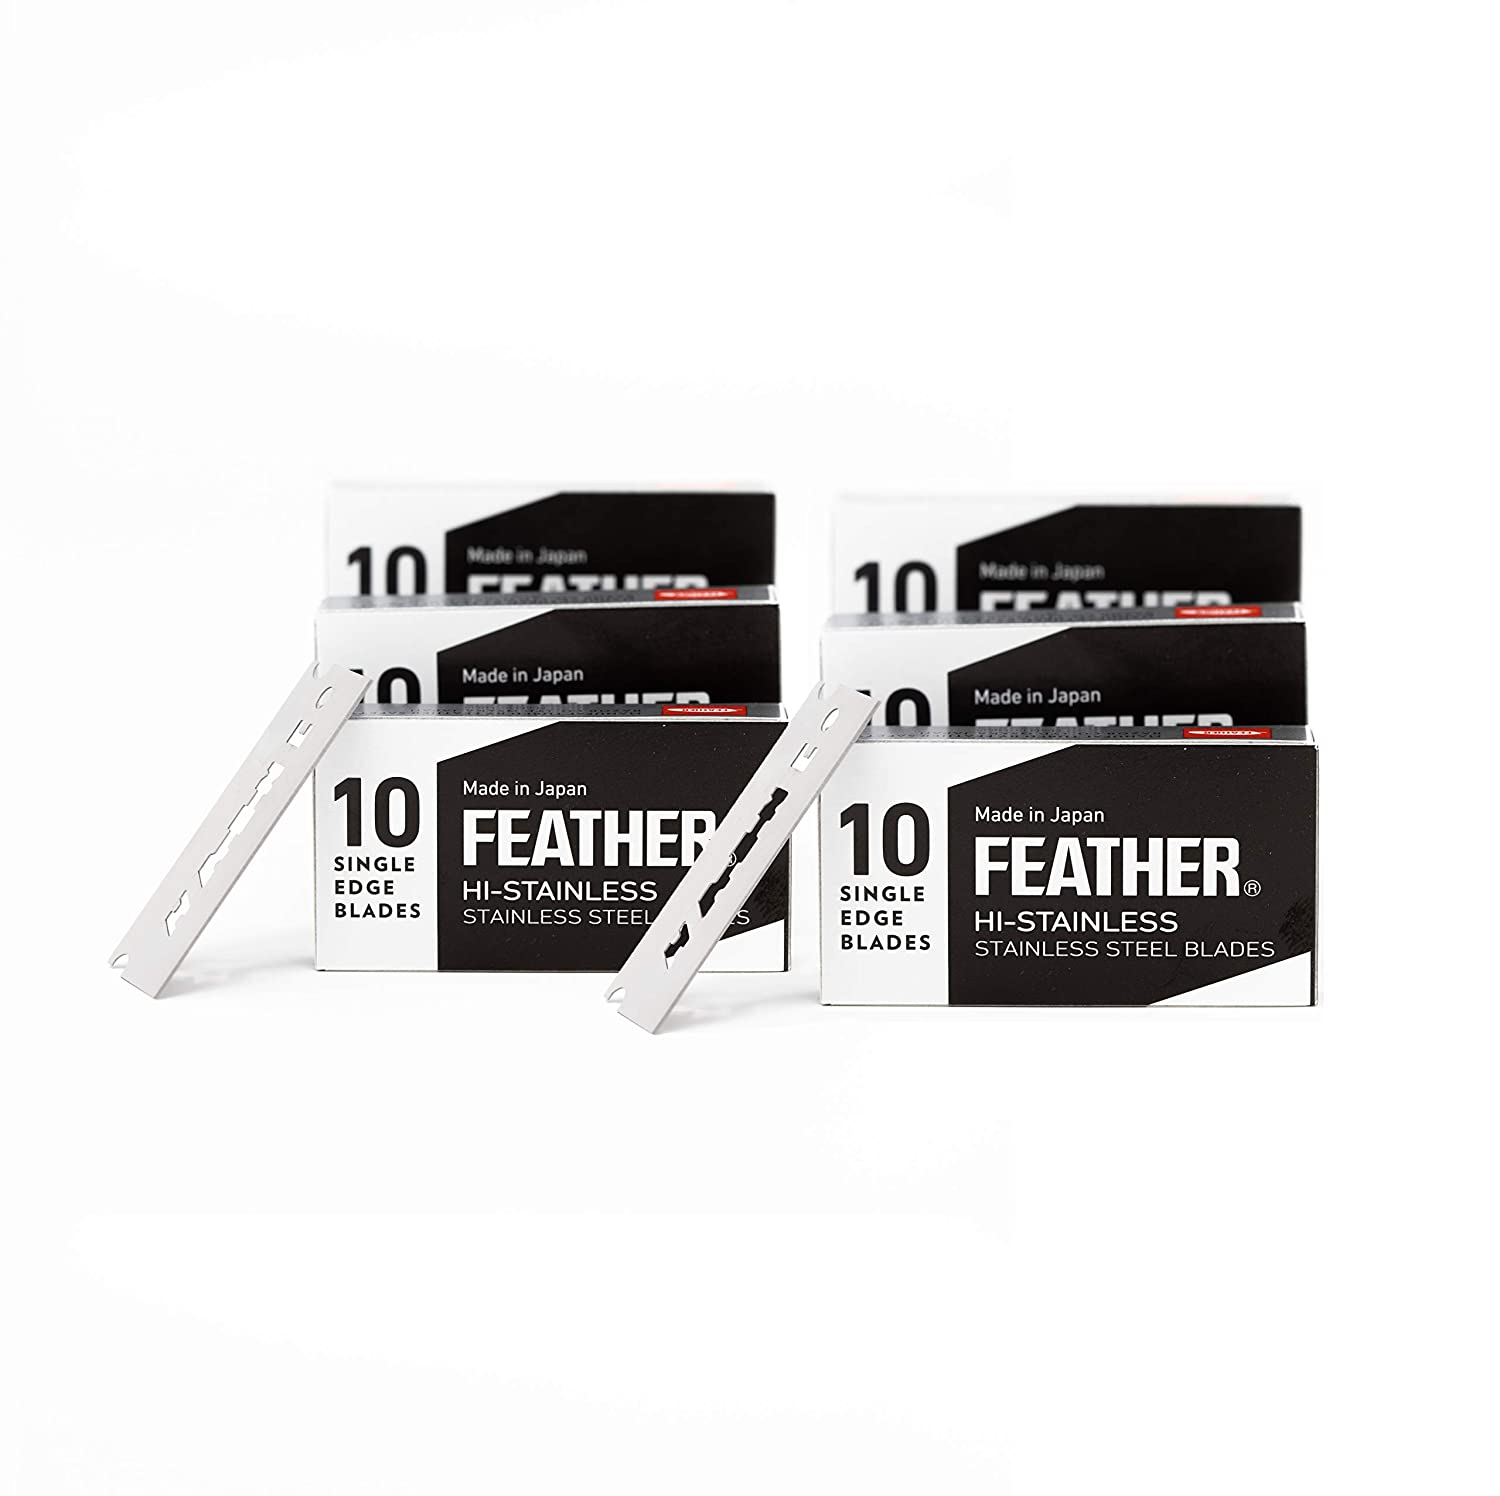 Feather FHS-10 Single Edge Razor Blades (60 Count) with Disposal Bank